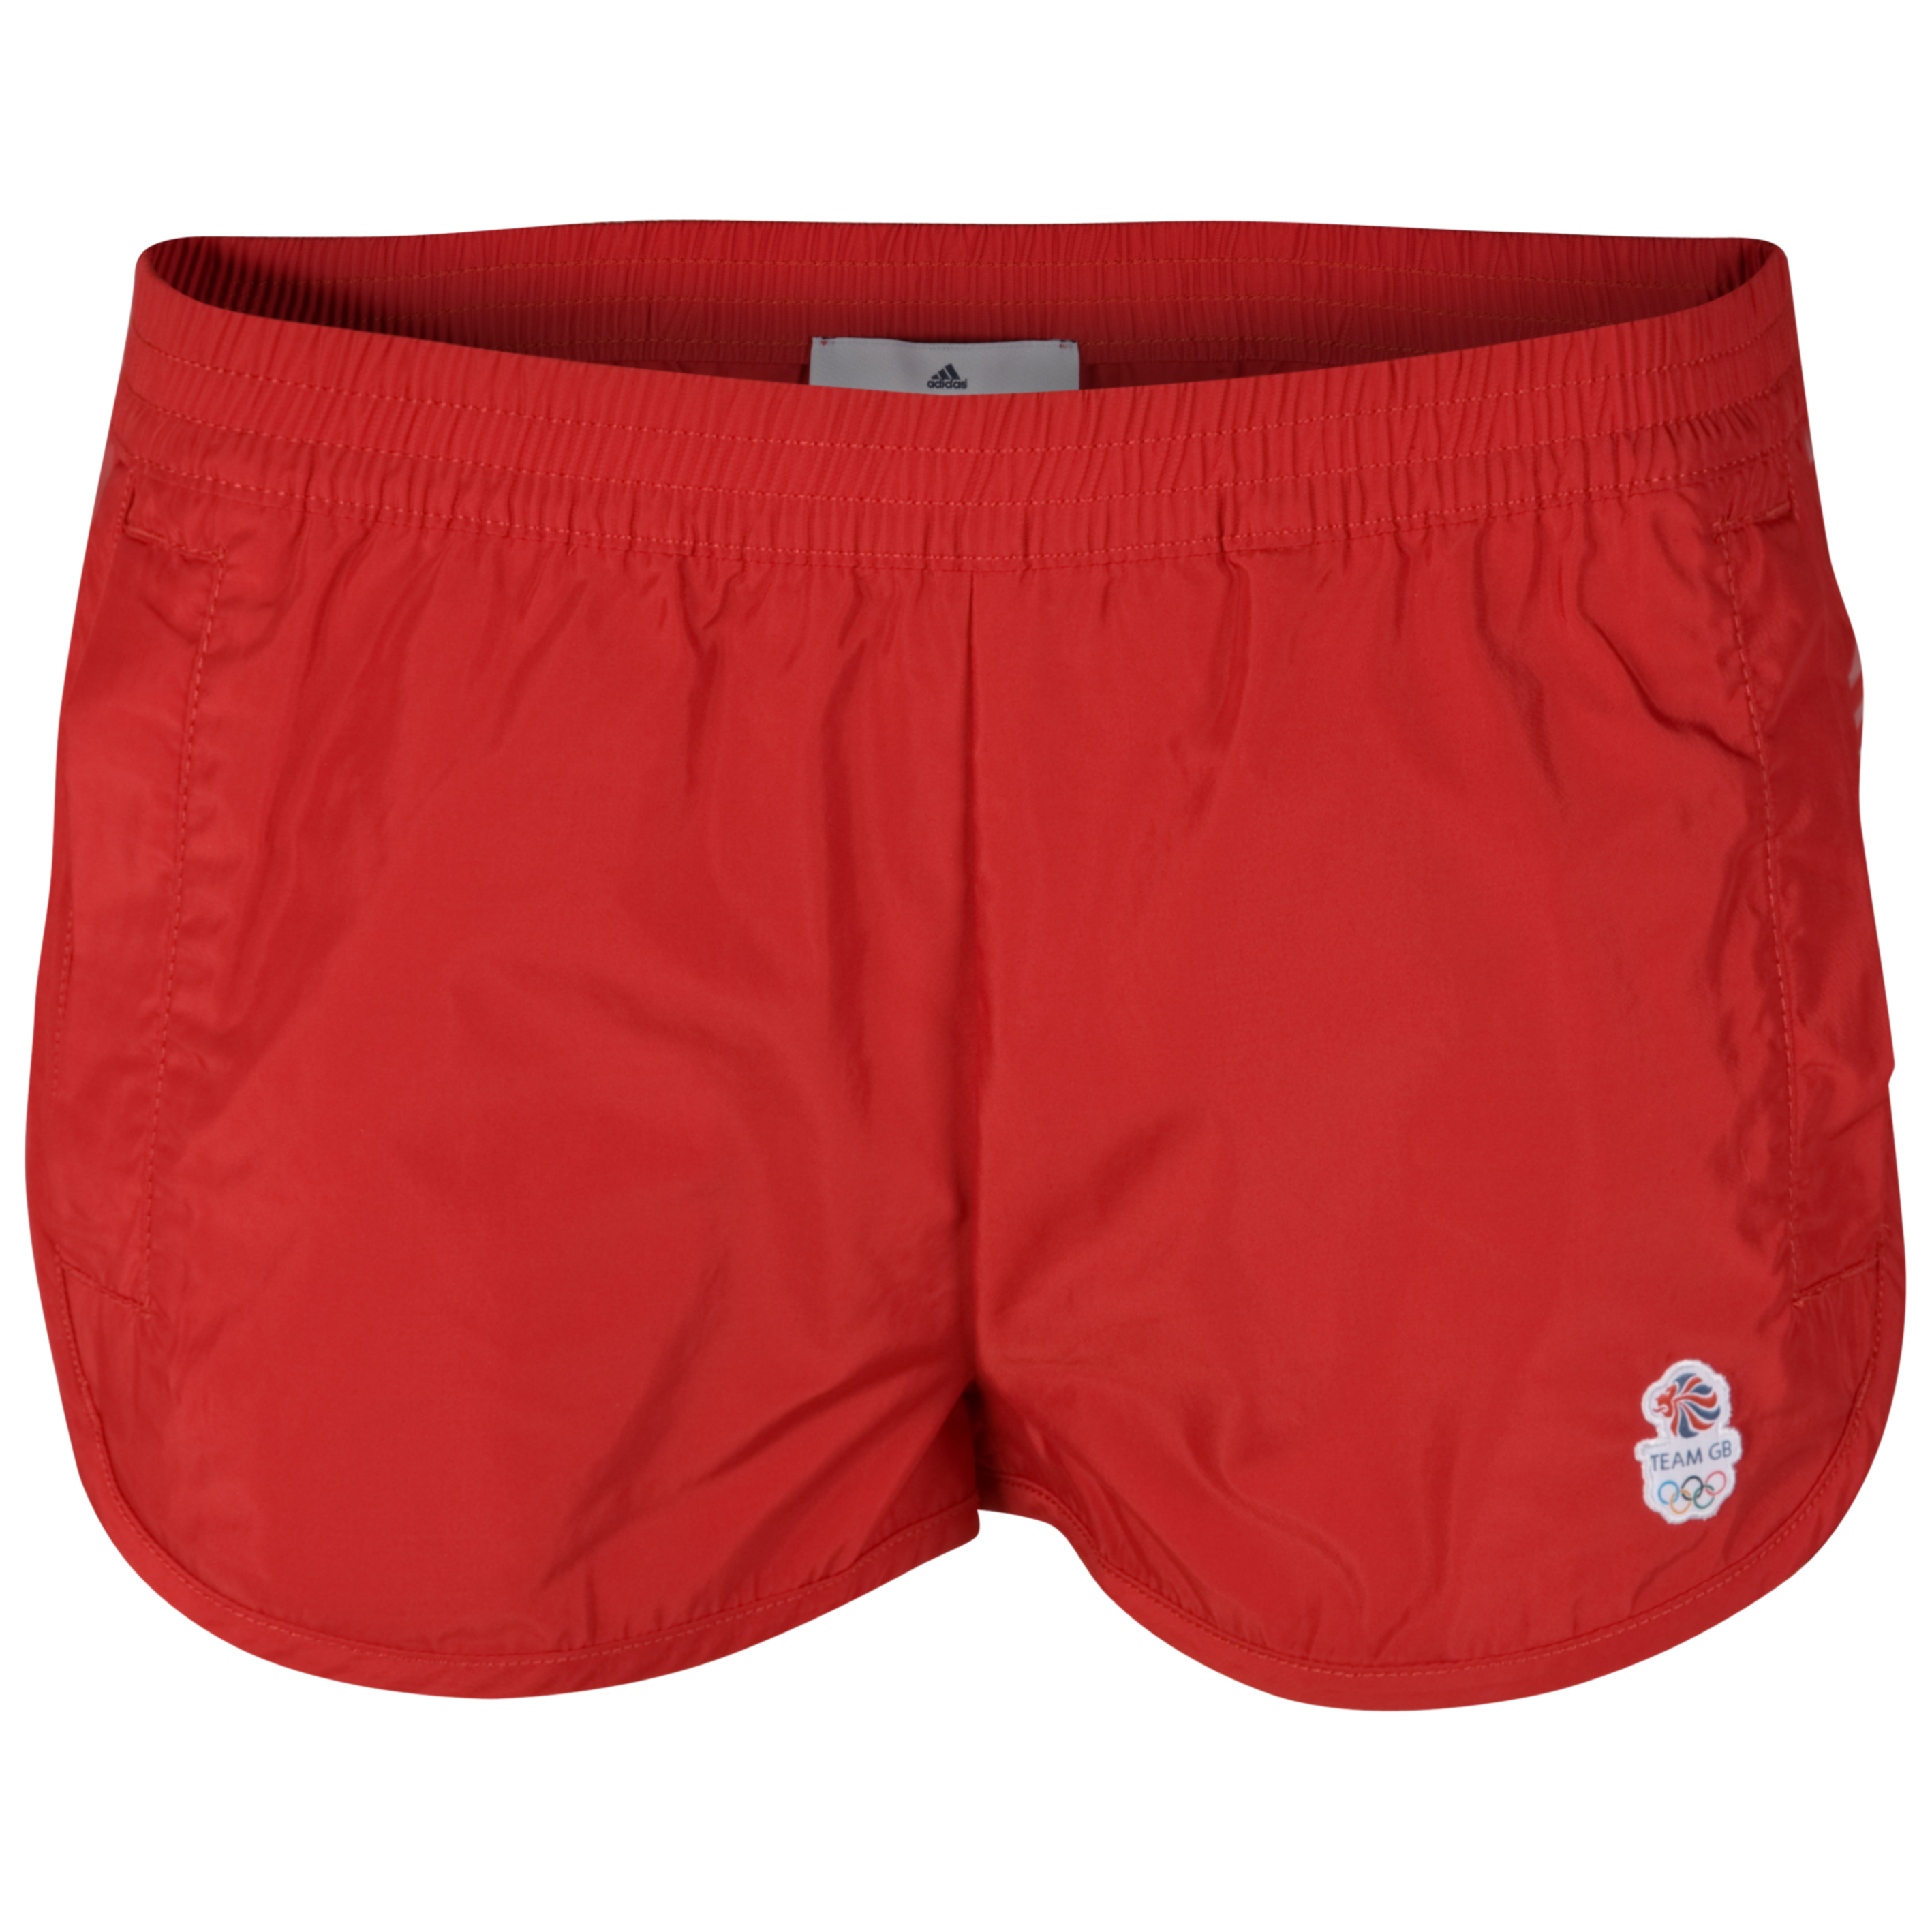 adidas Team GB Emblem Short - Scarlet - Womens